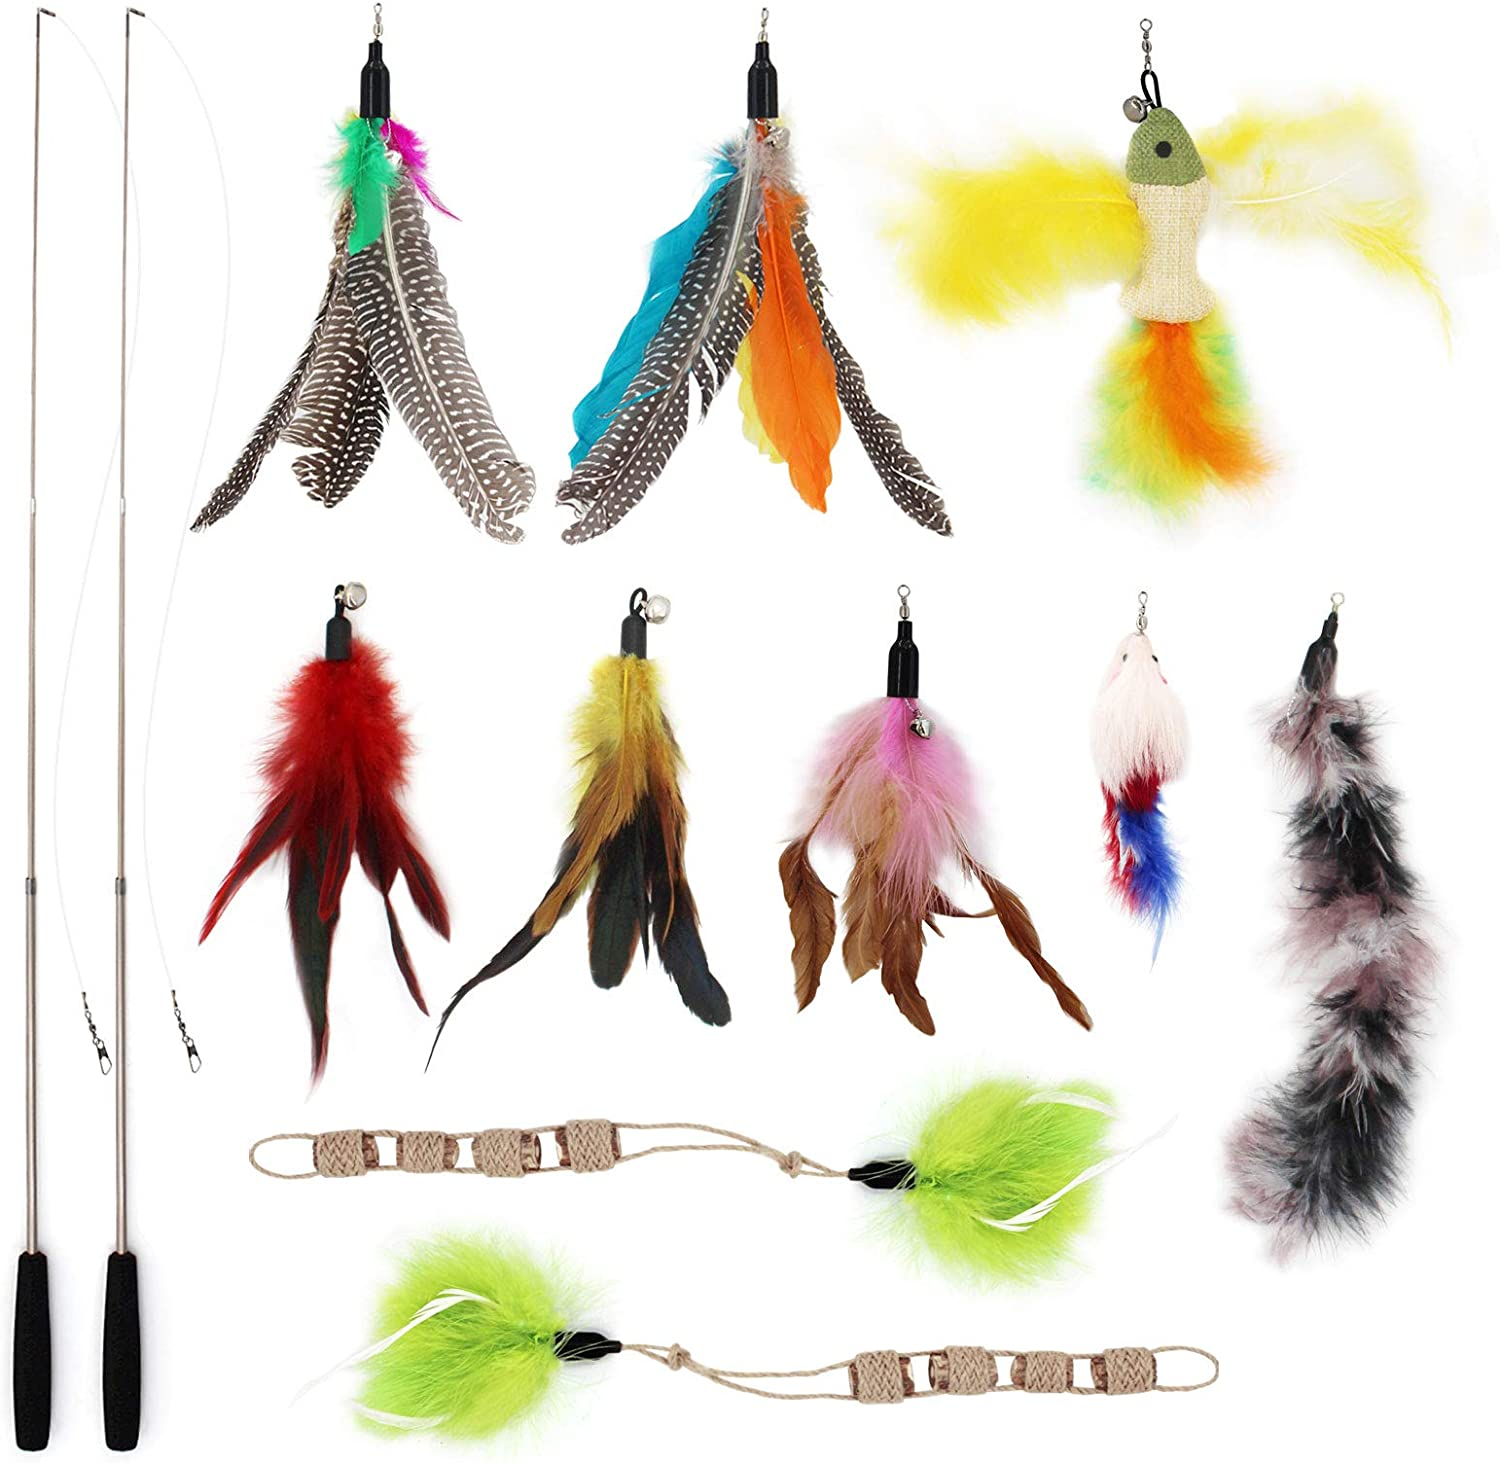 SONGWAY 12Pcs Cat Feather Toys wholesale Set Retractable Max 43% OFF - Toy 2 Wand